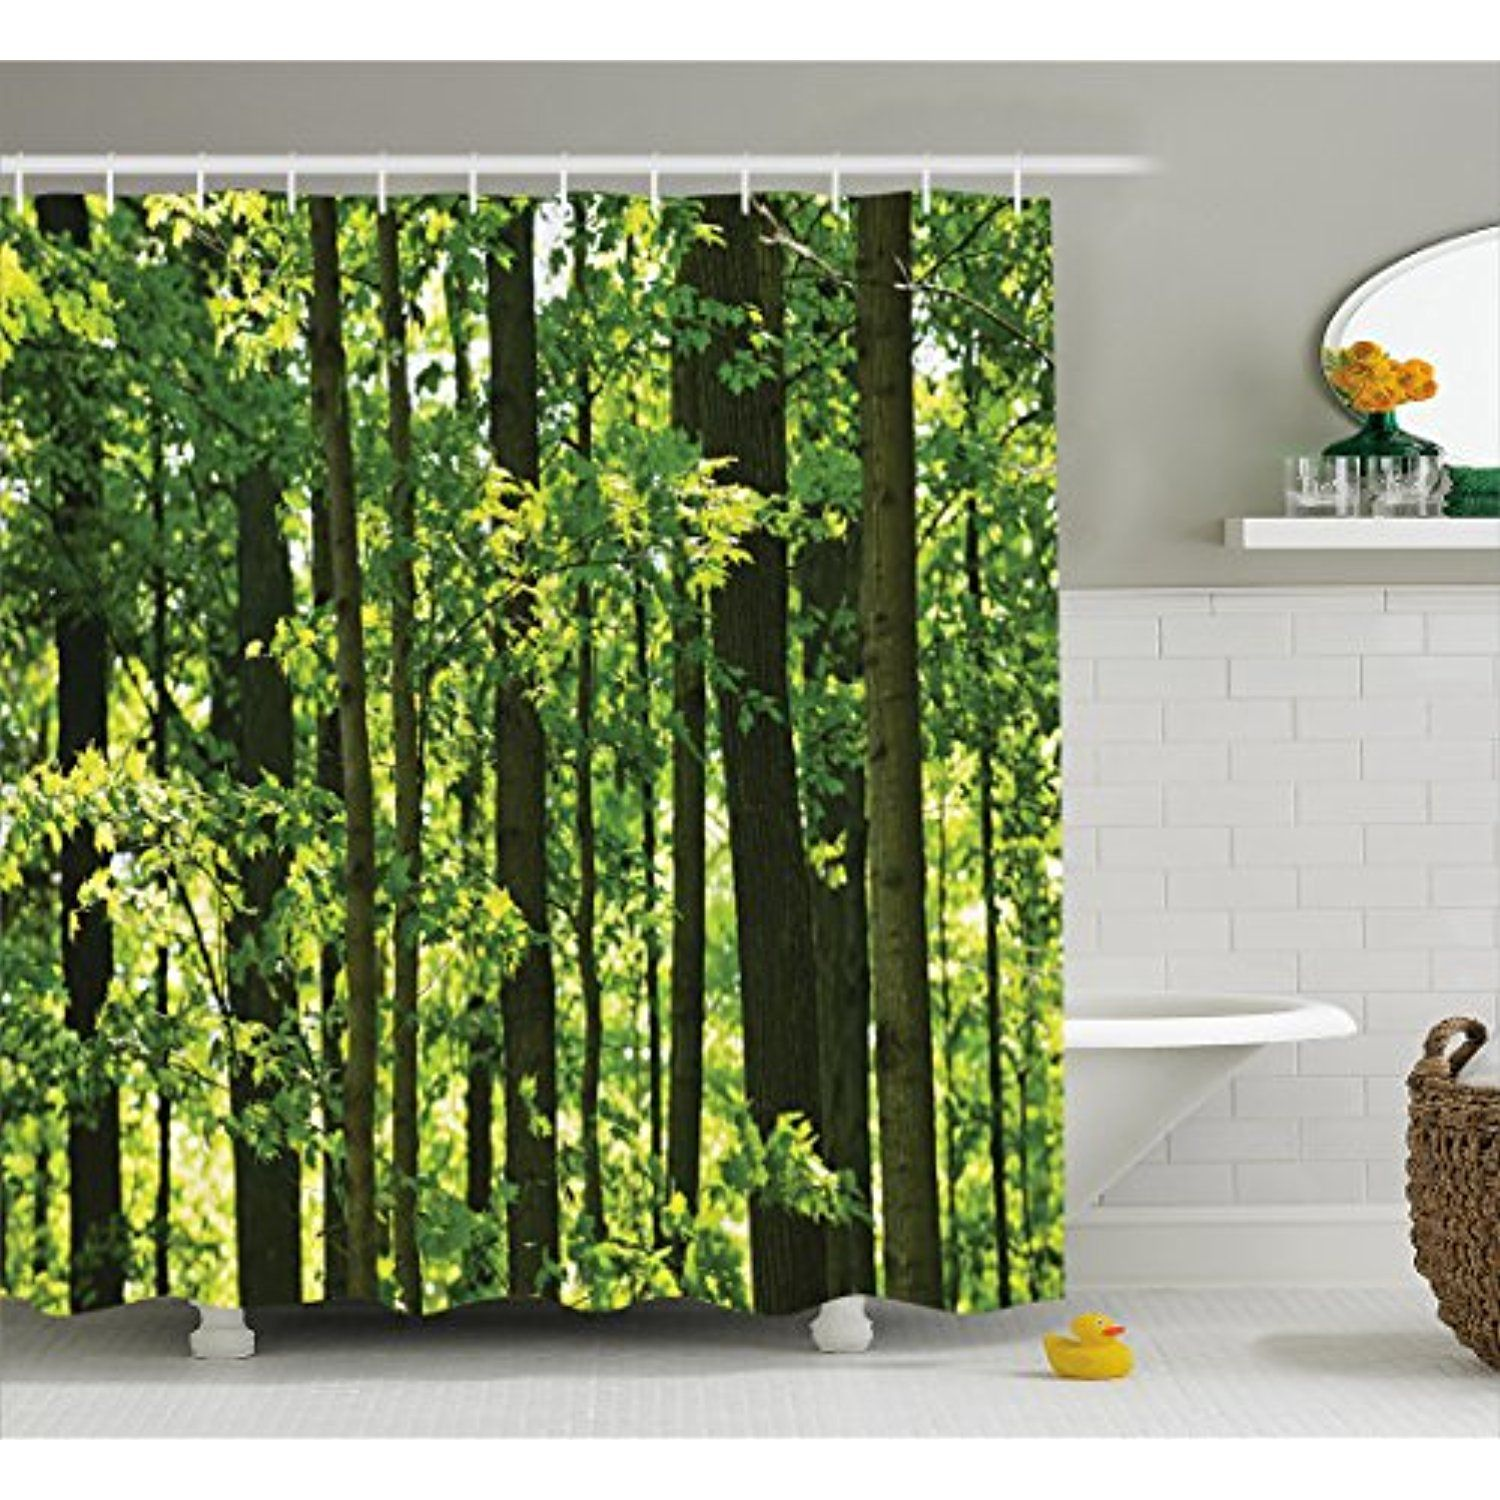 Nature Shower Curtain By Lunarable Refreshing Lush Young Forest With Canadian Maple Trees Foliage Environment Imag Bamboo Decor Shower Curtain Sets Leaf Decor